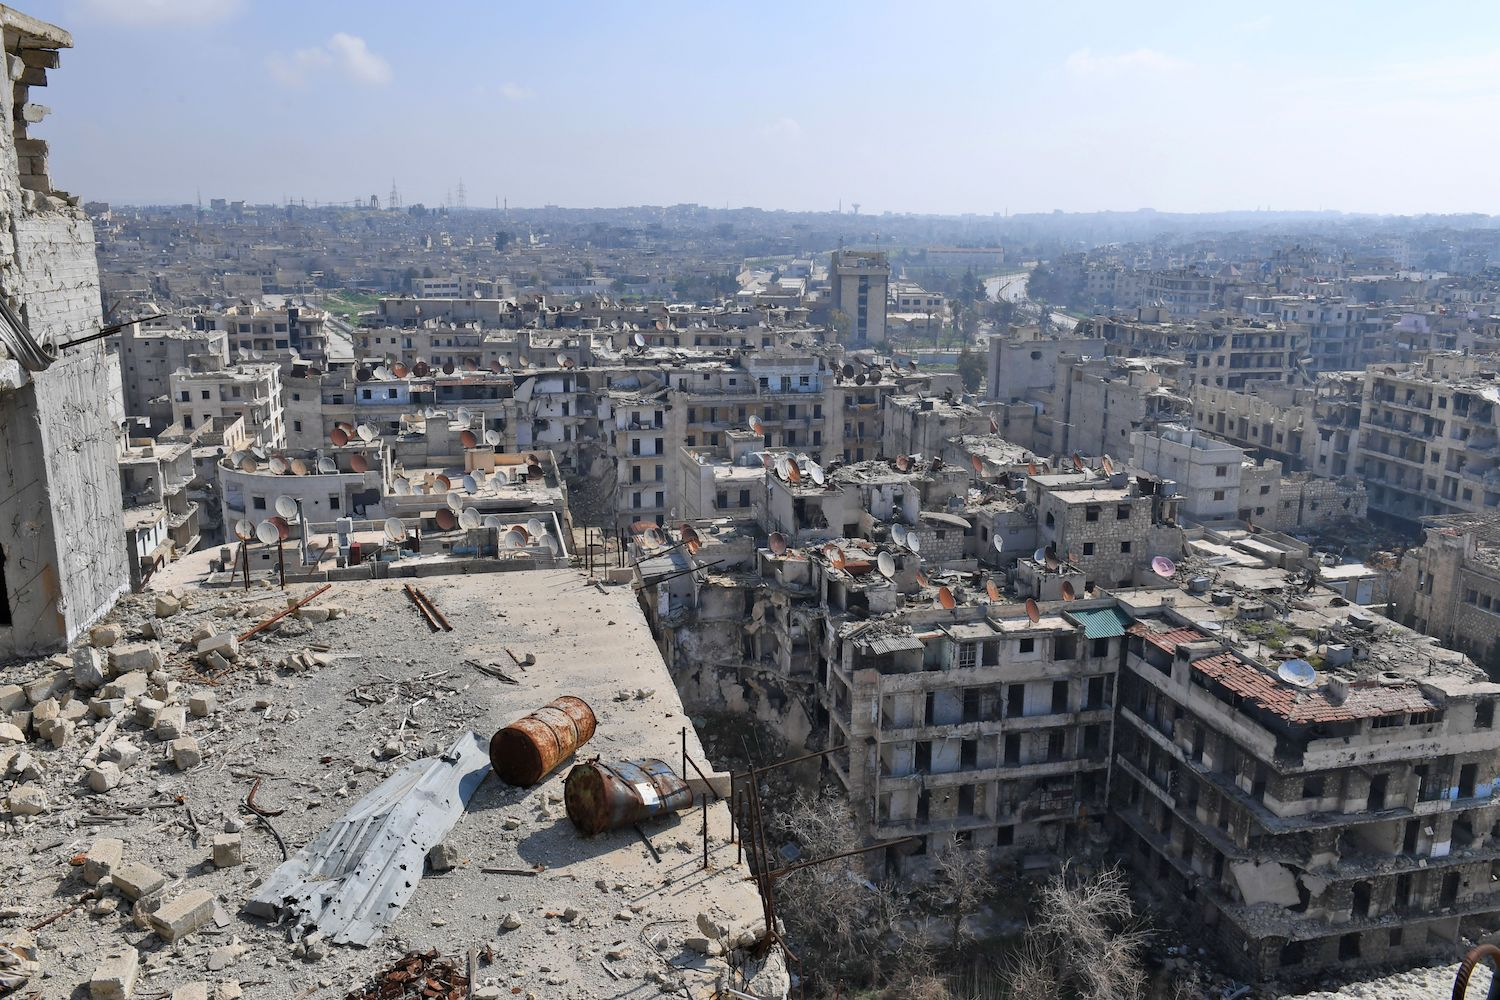 A  general view of Sheikh Maqsoud neighbourhood in the northern Syrian city of Aleppo taken on Feb. 23, after Syrian army forces replaced the Kurdish People's Protection Units (YPG) to assume control over the area. / AFP PHOTO / GEORGE OURFALIAN        (Photo credit should read GEORGE OURFALIAN/AFP/Getty Images)